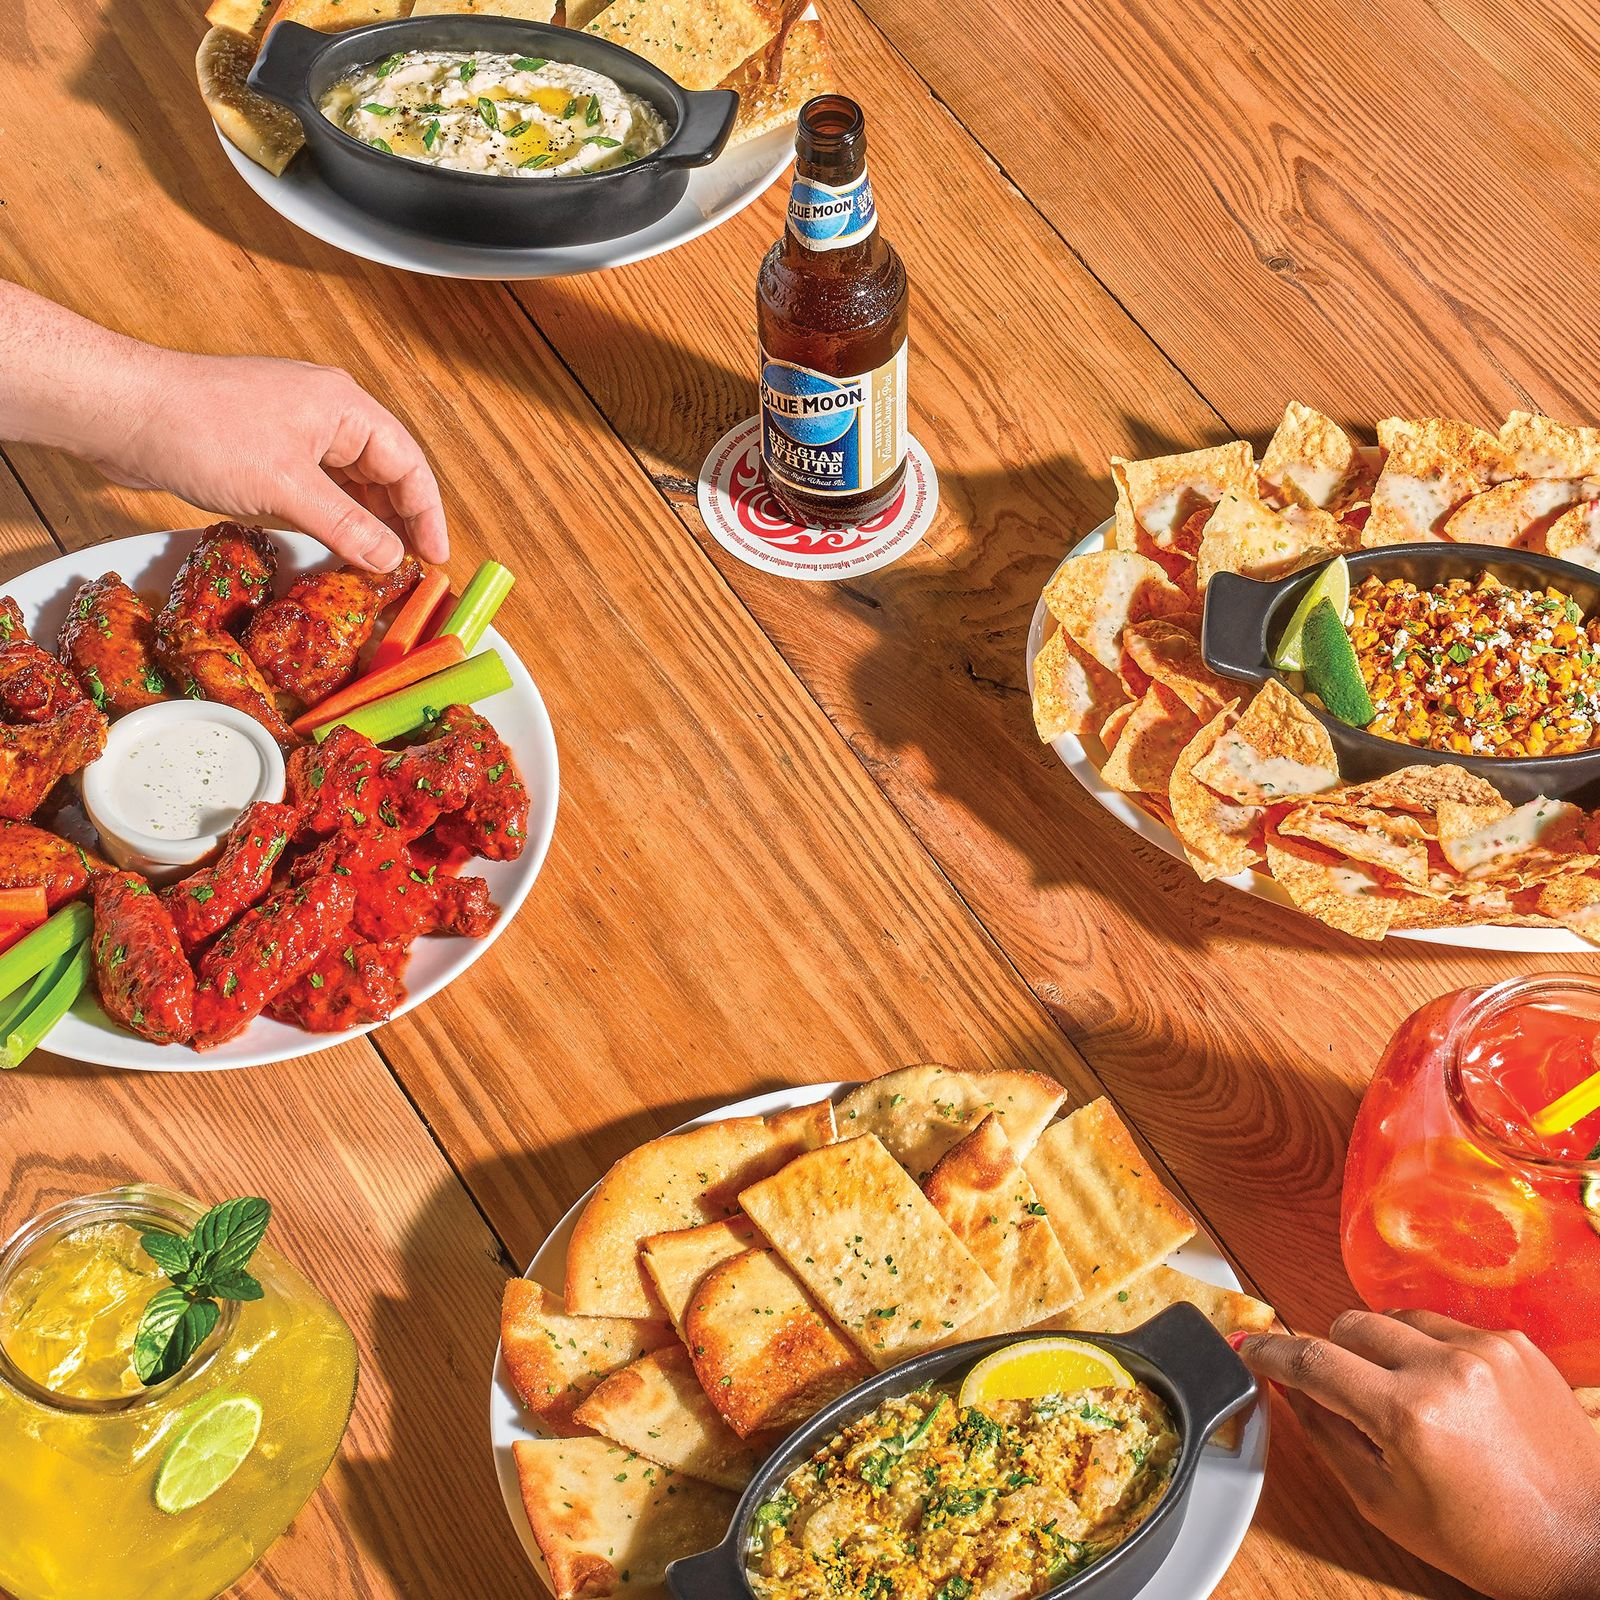 Boston's Pizza Restaurant & Sports Bar Invites Guests to Escape the Everyday with New, Shareable Menu Items, Drinks